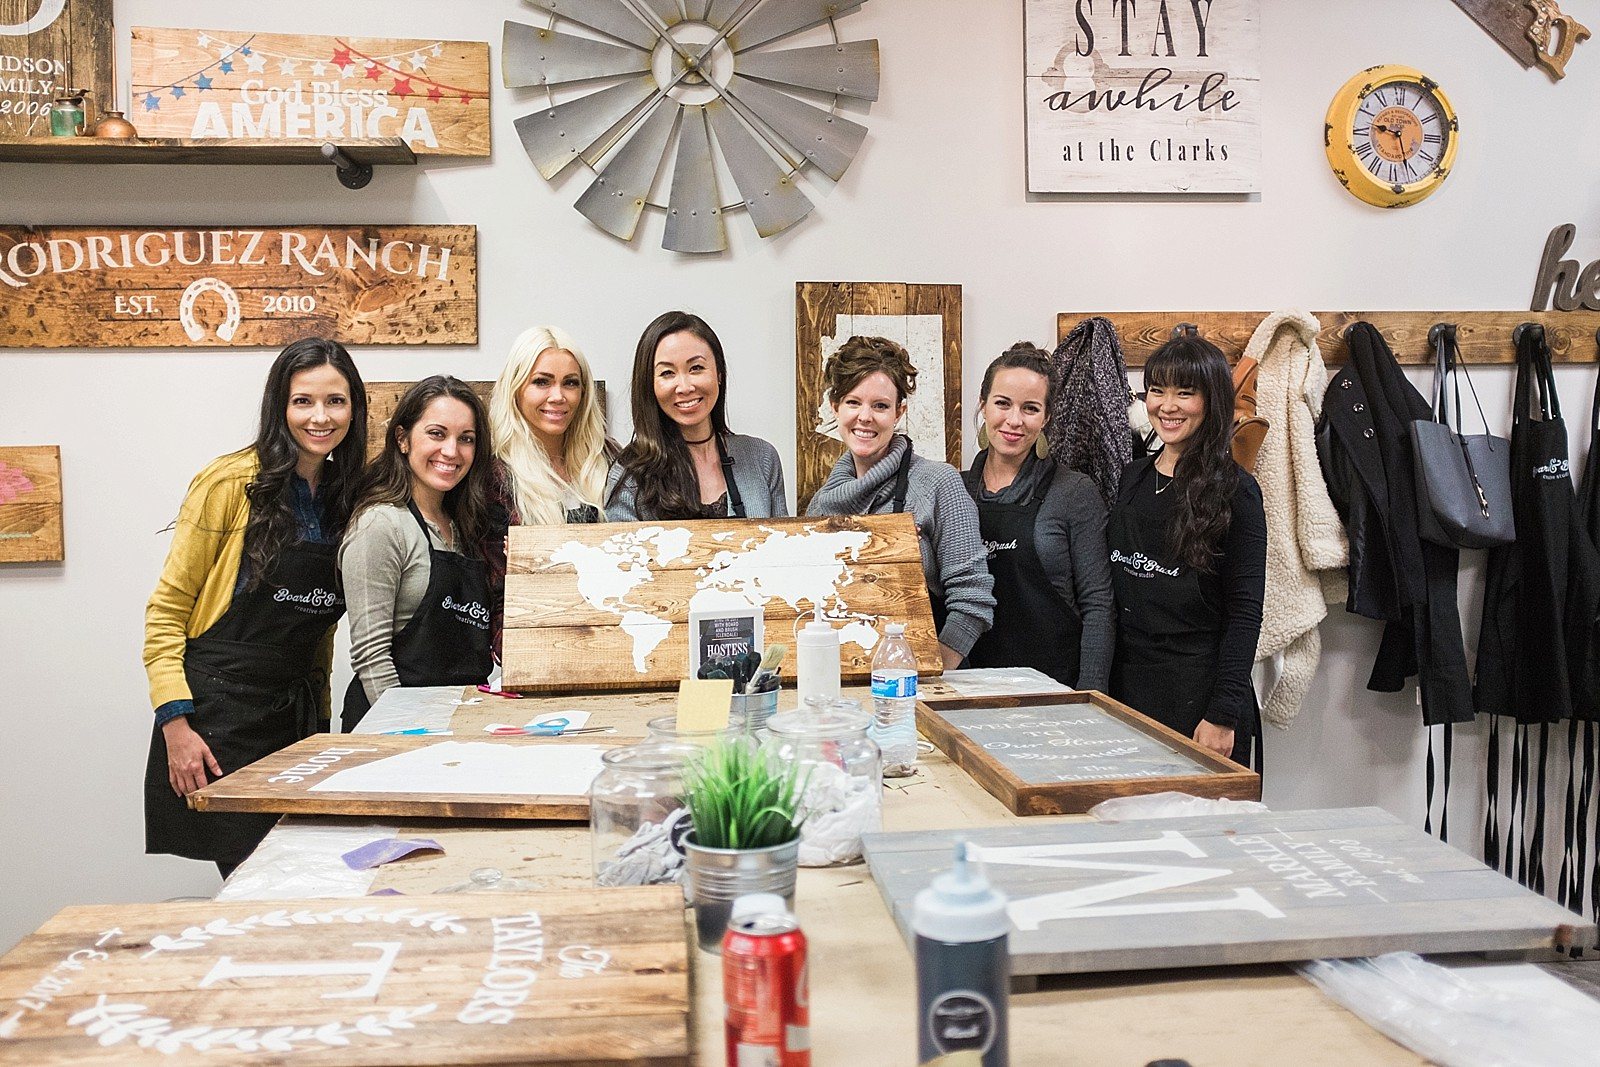 fun girls night custom painted wood boards board and brush world map project - similar to paint your own canvas or ceramic piece